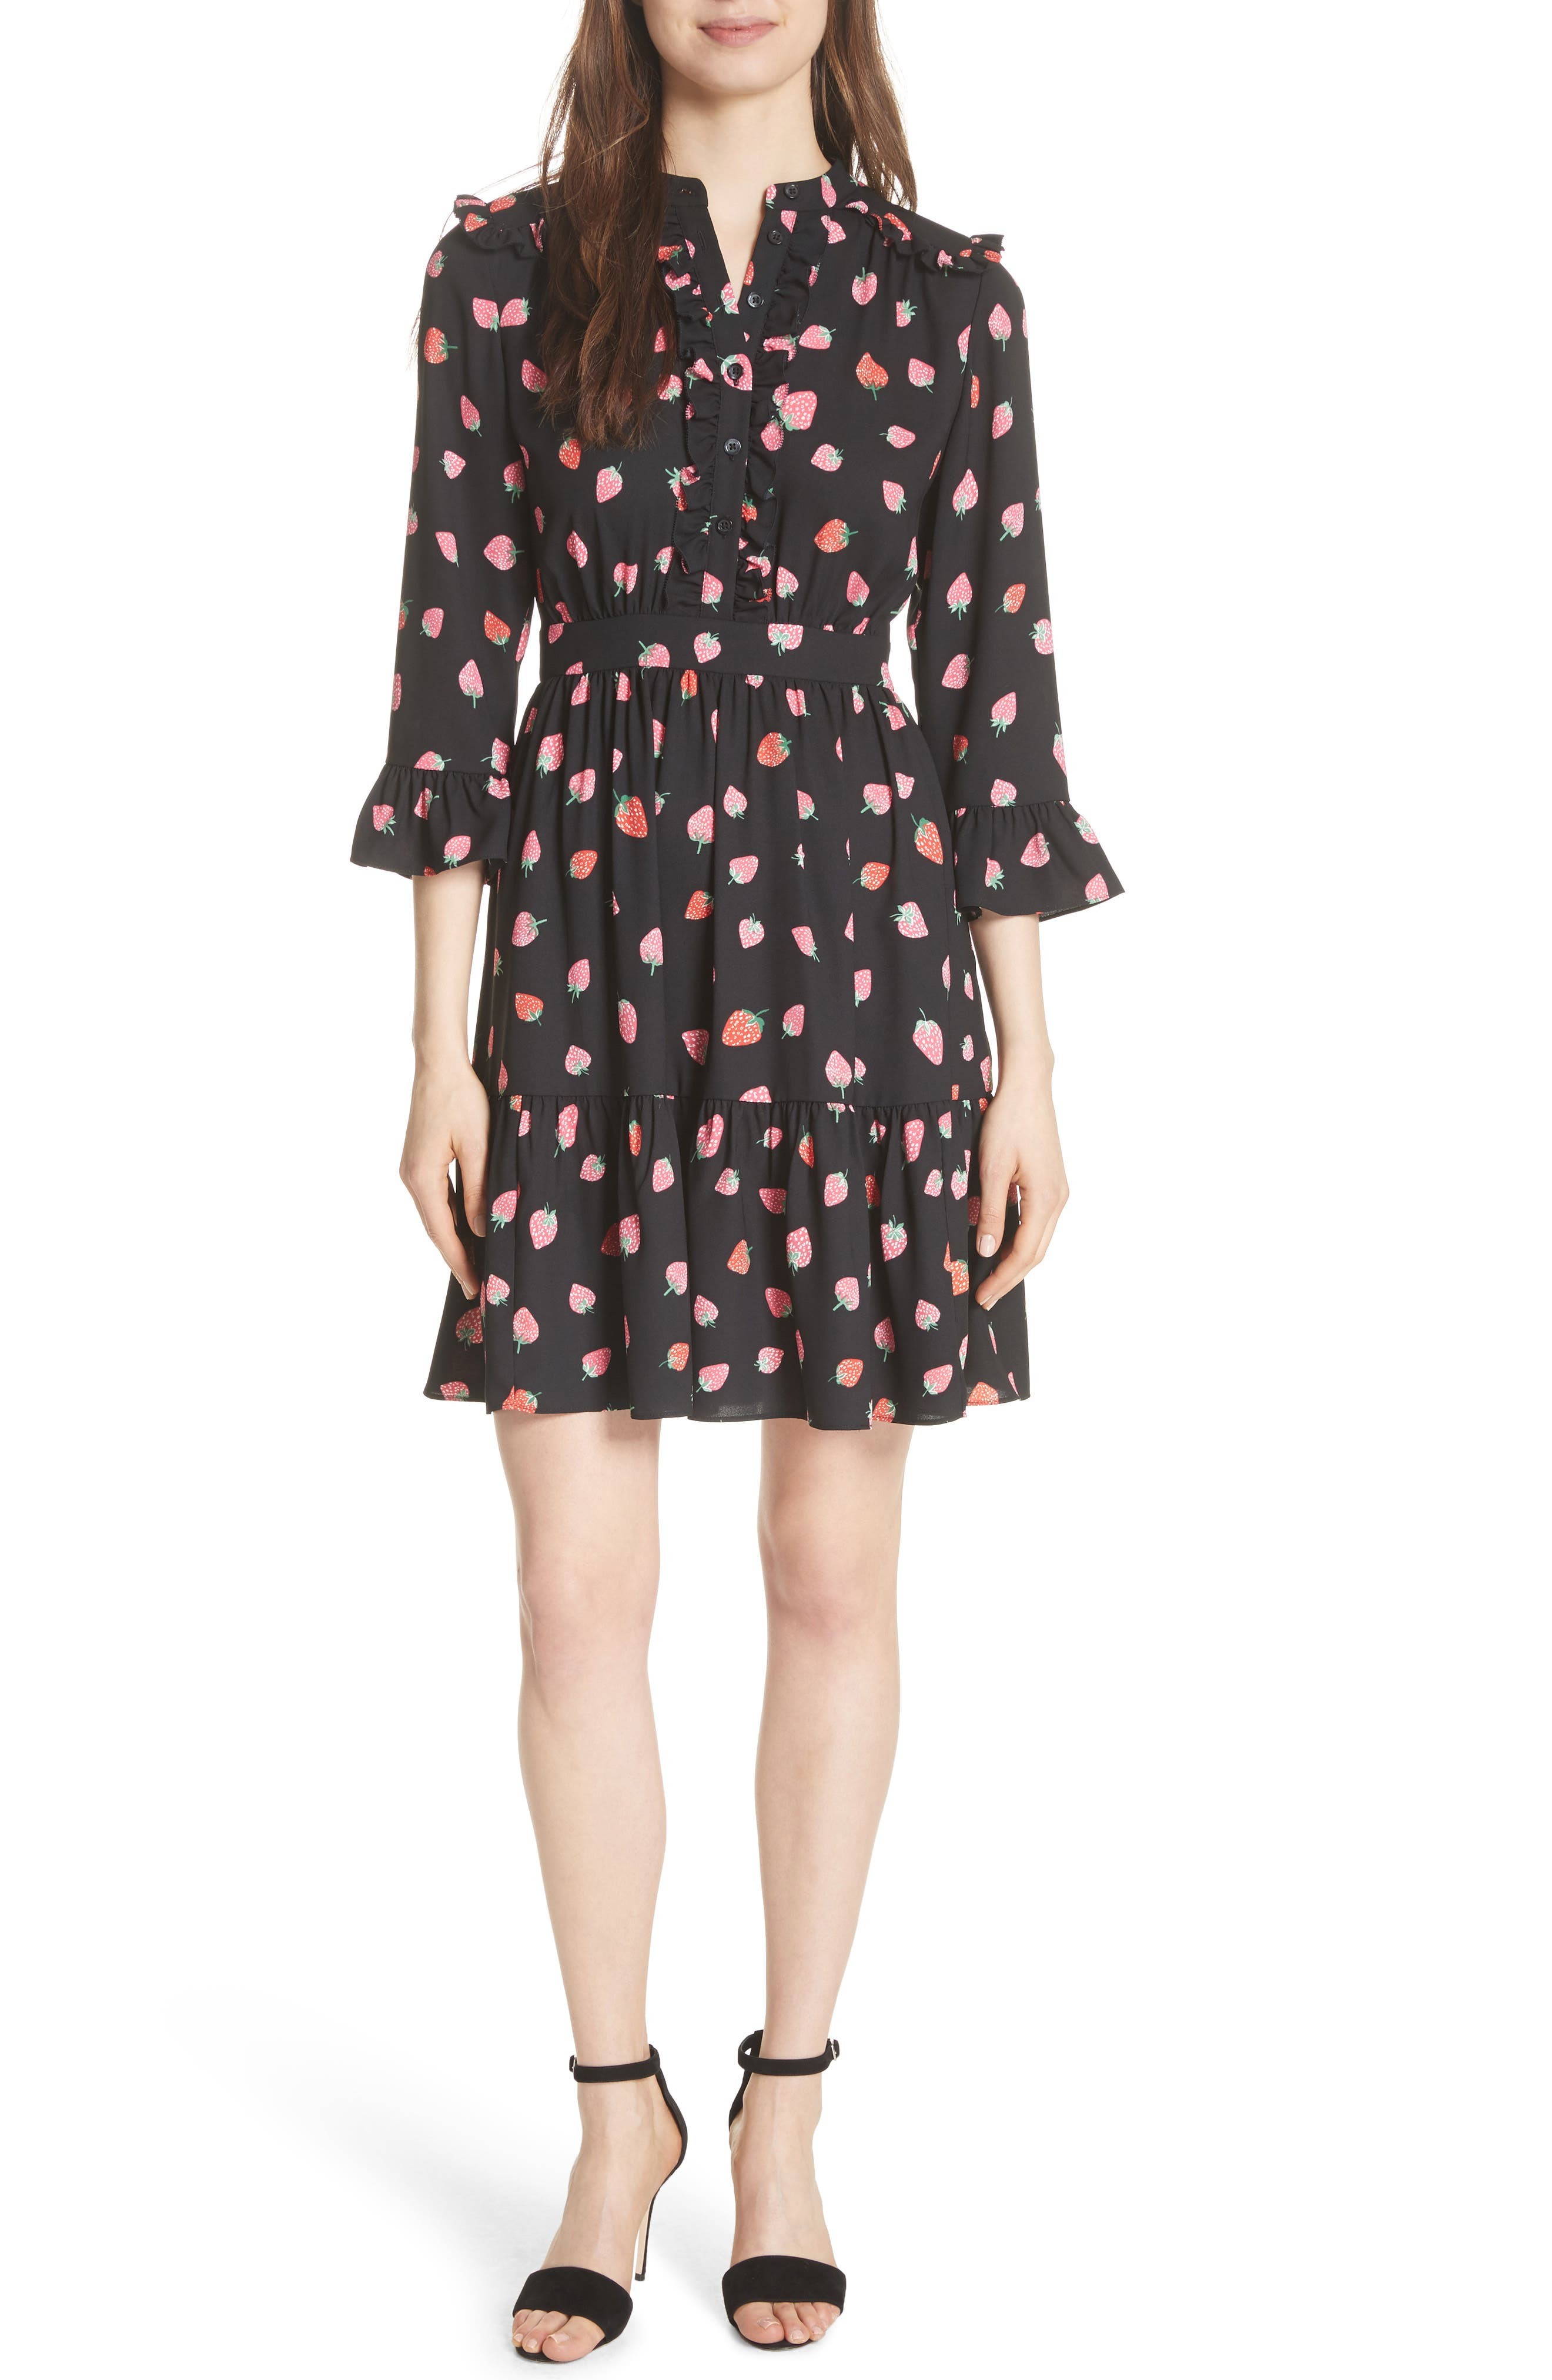 tossed berry shirtdress,                         Main,                         color, Black